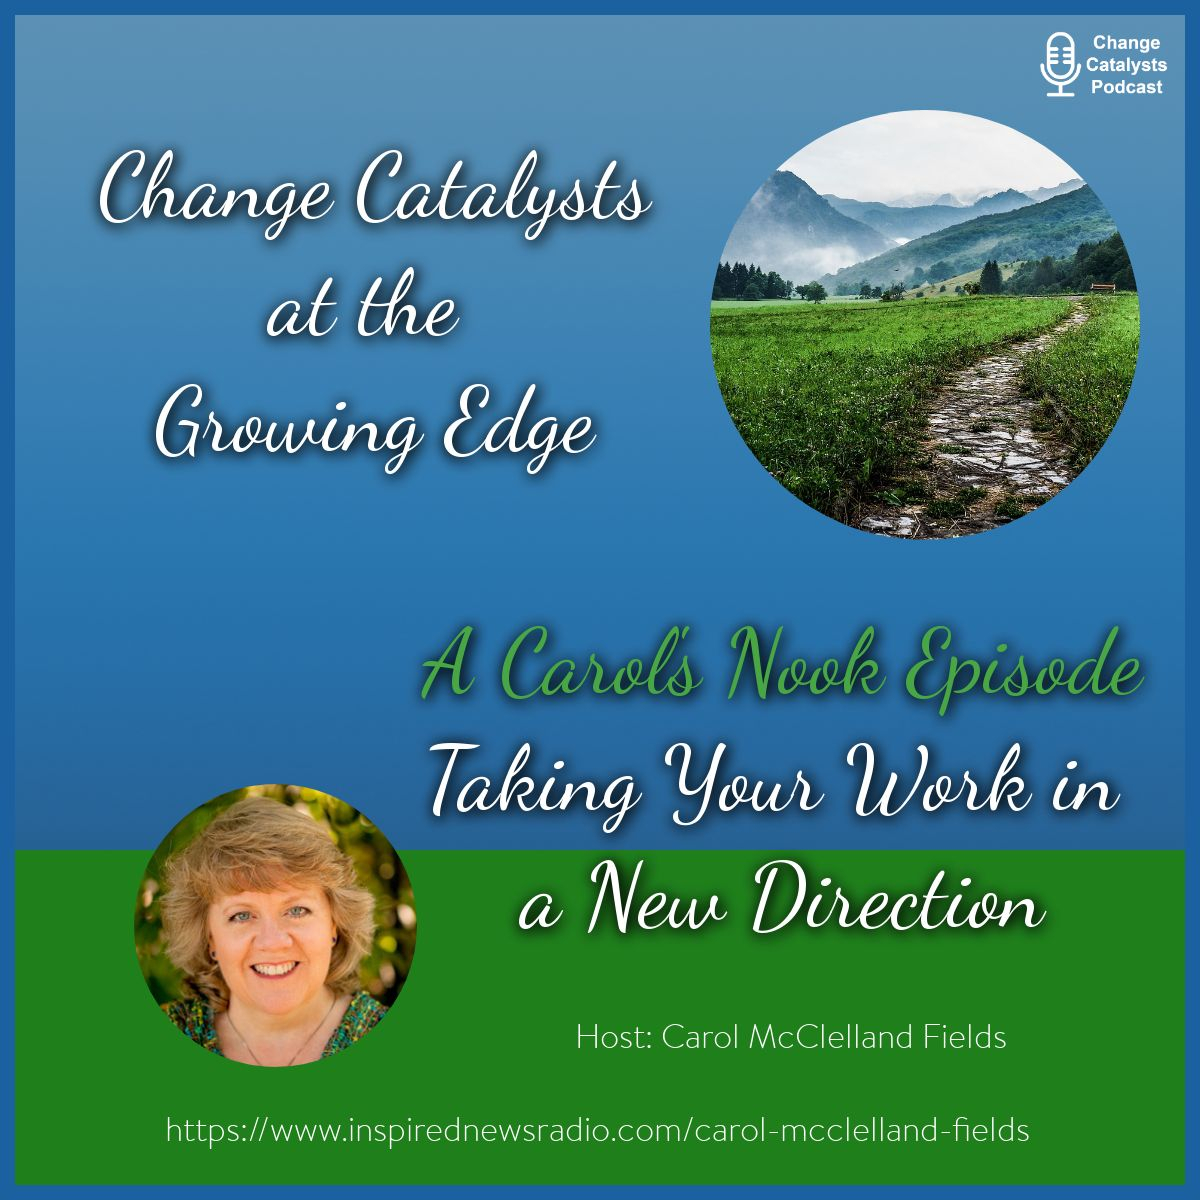 Ep 14 Change Catalysts Podcast - Carol McClelland - Taking Your Work in a New Direction.jpg